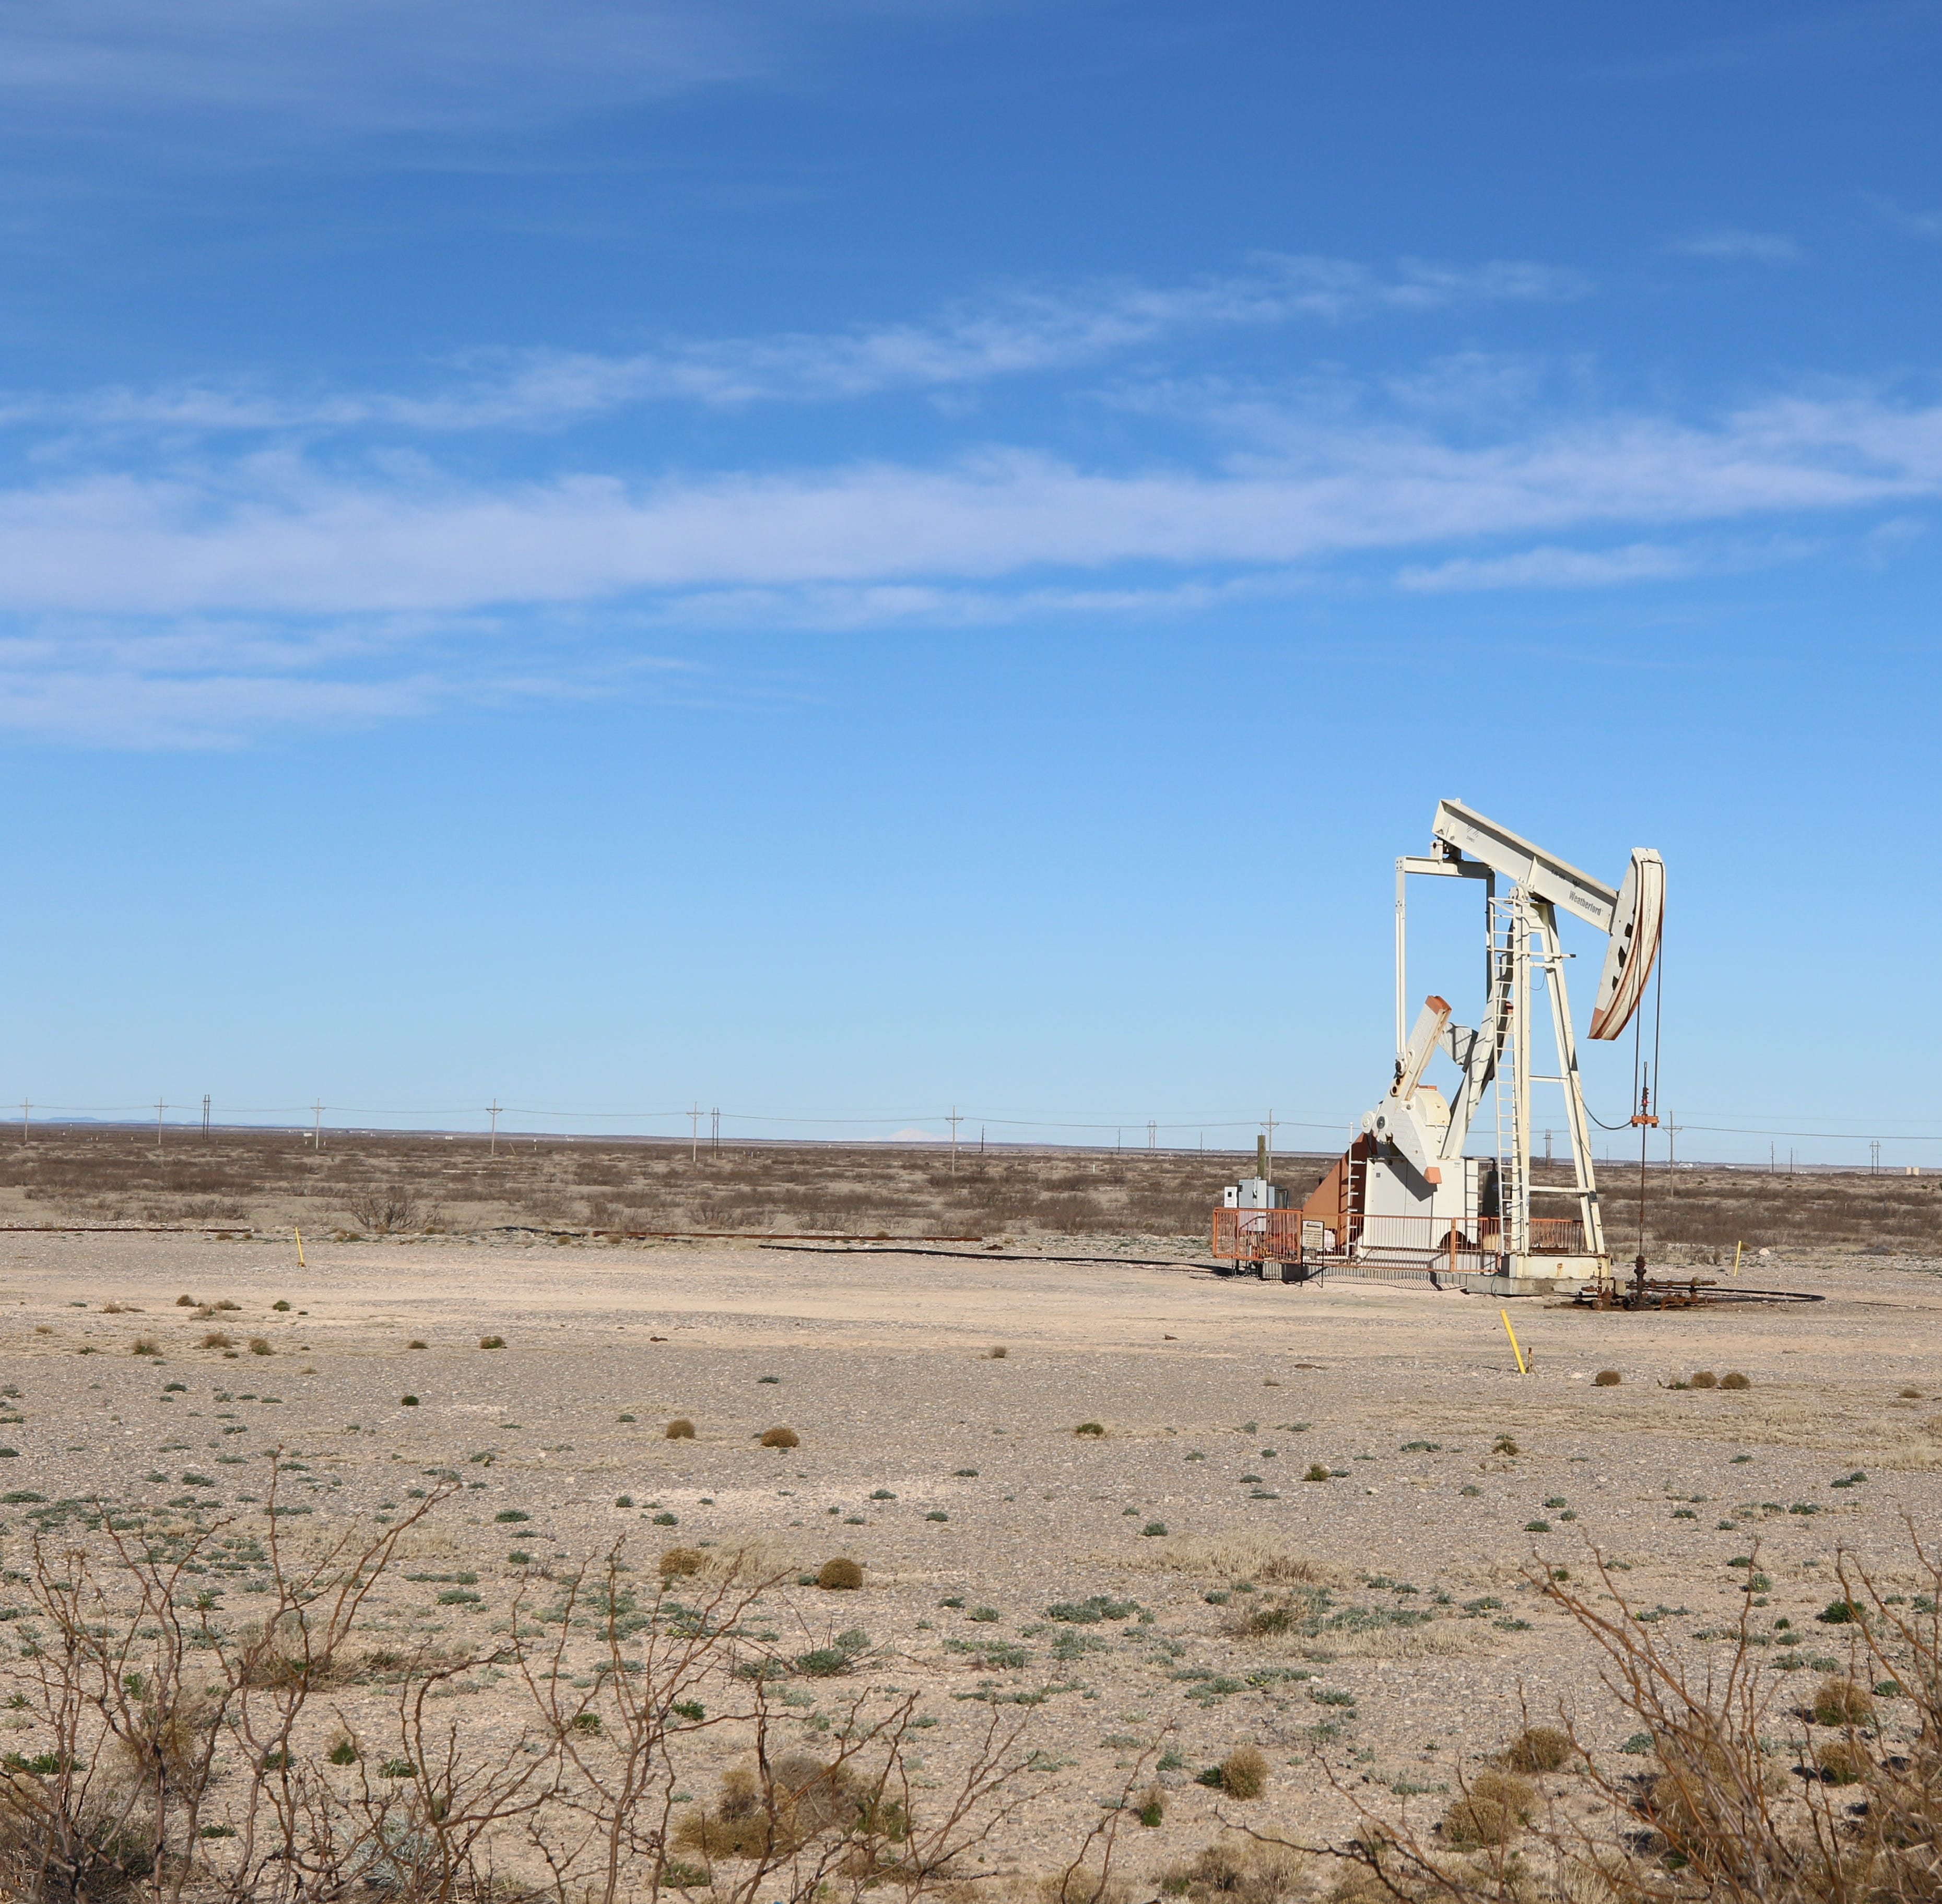 Report: Fracking ban could cost New Mexico billions, cut oil and gas production